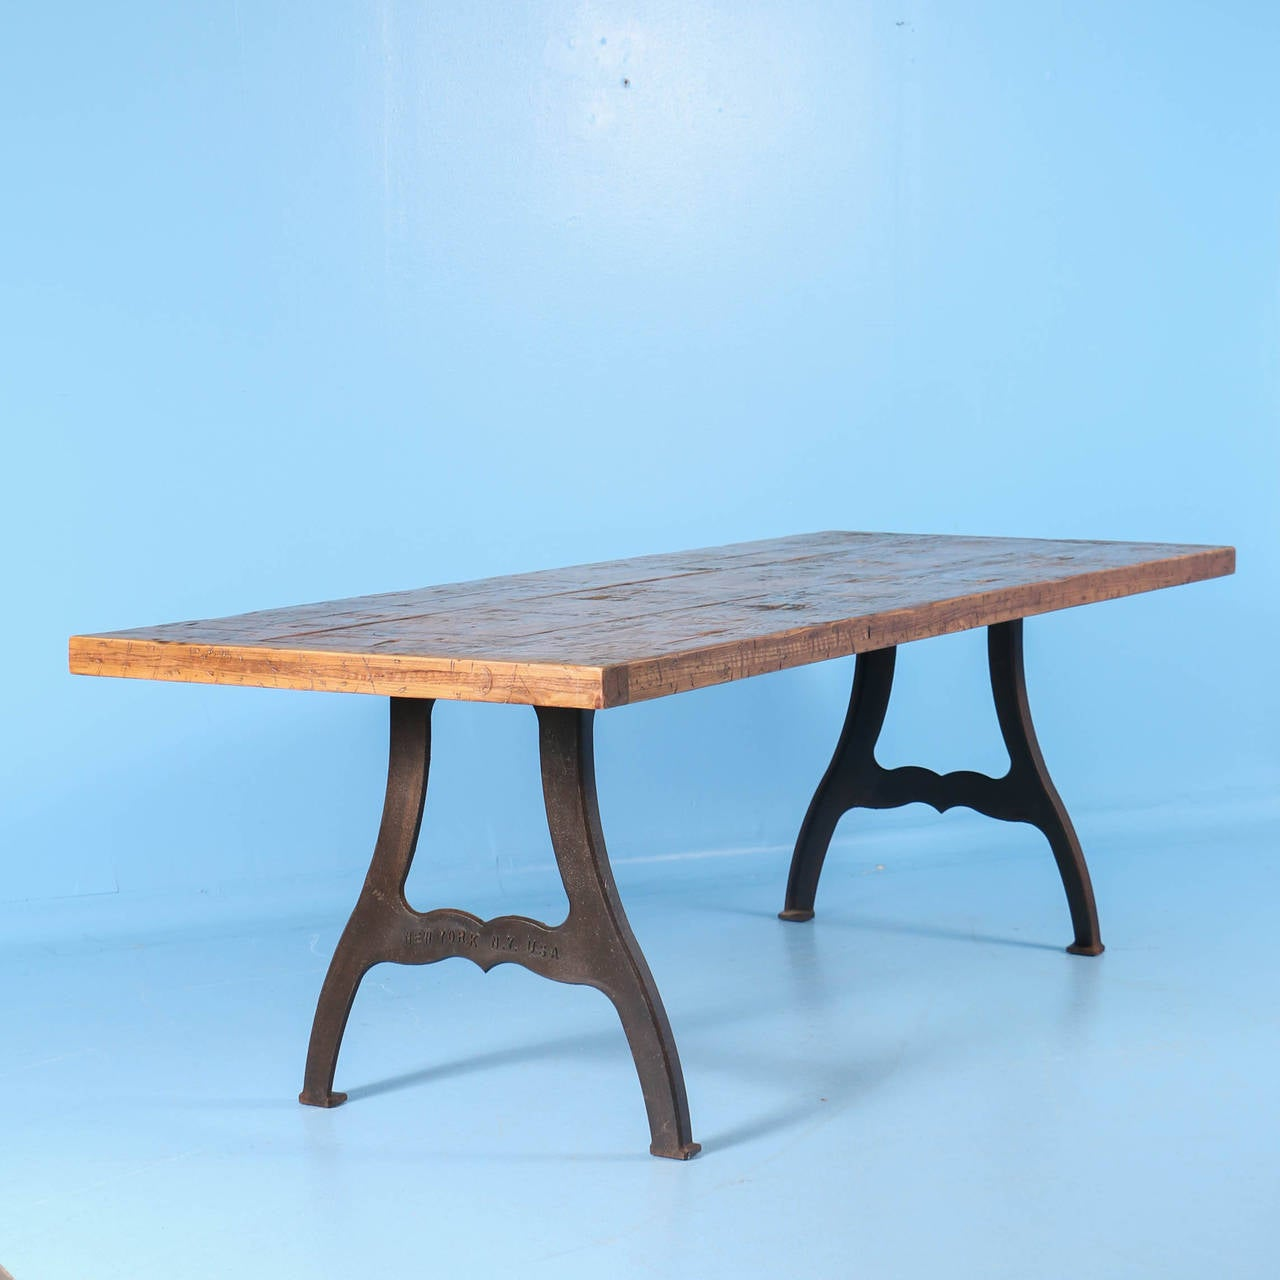 Vintage Industrial Look Dining Table From Reclaimed Wood